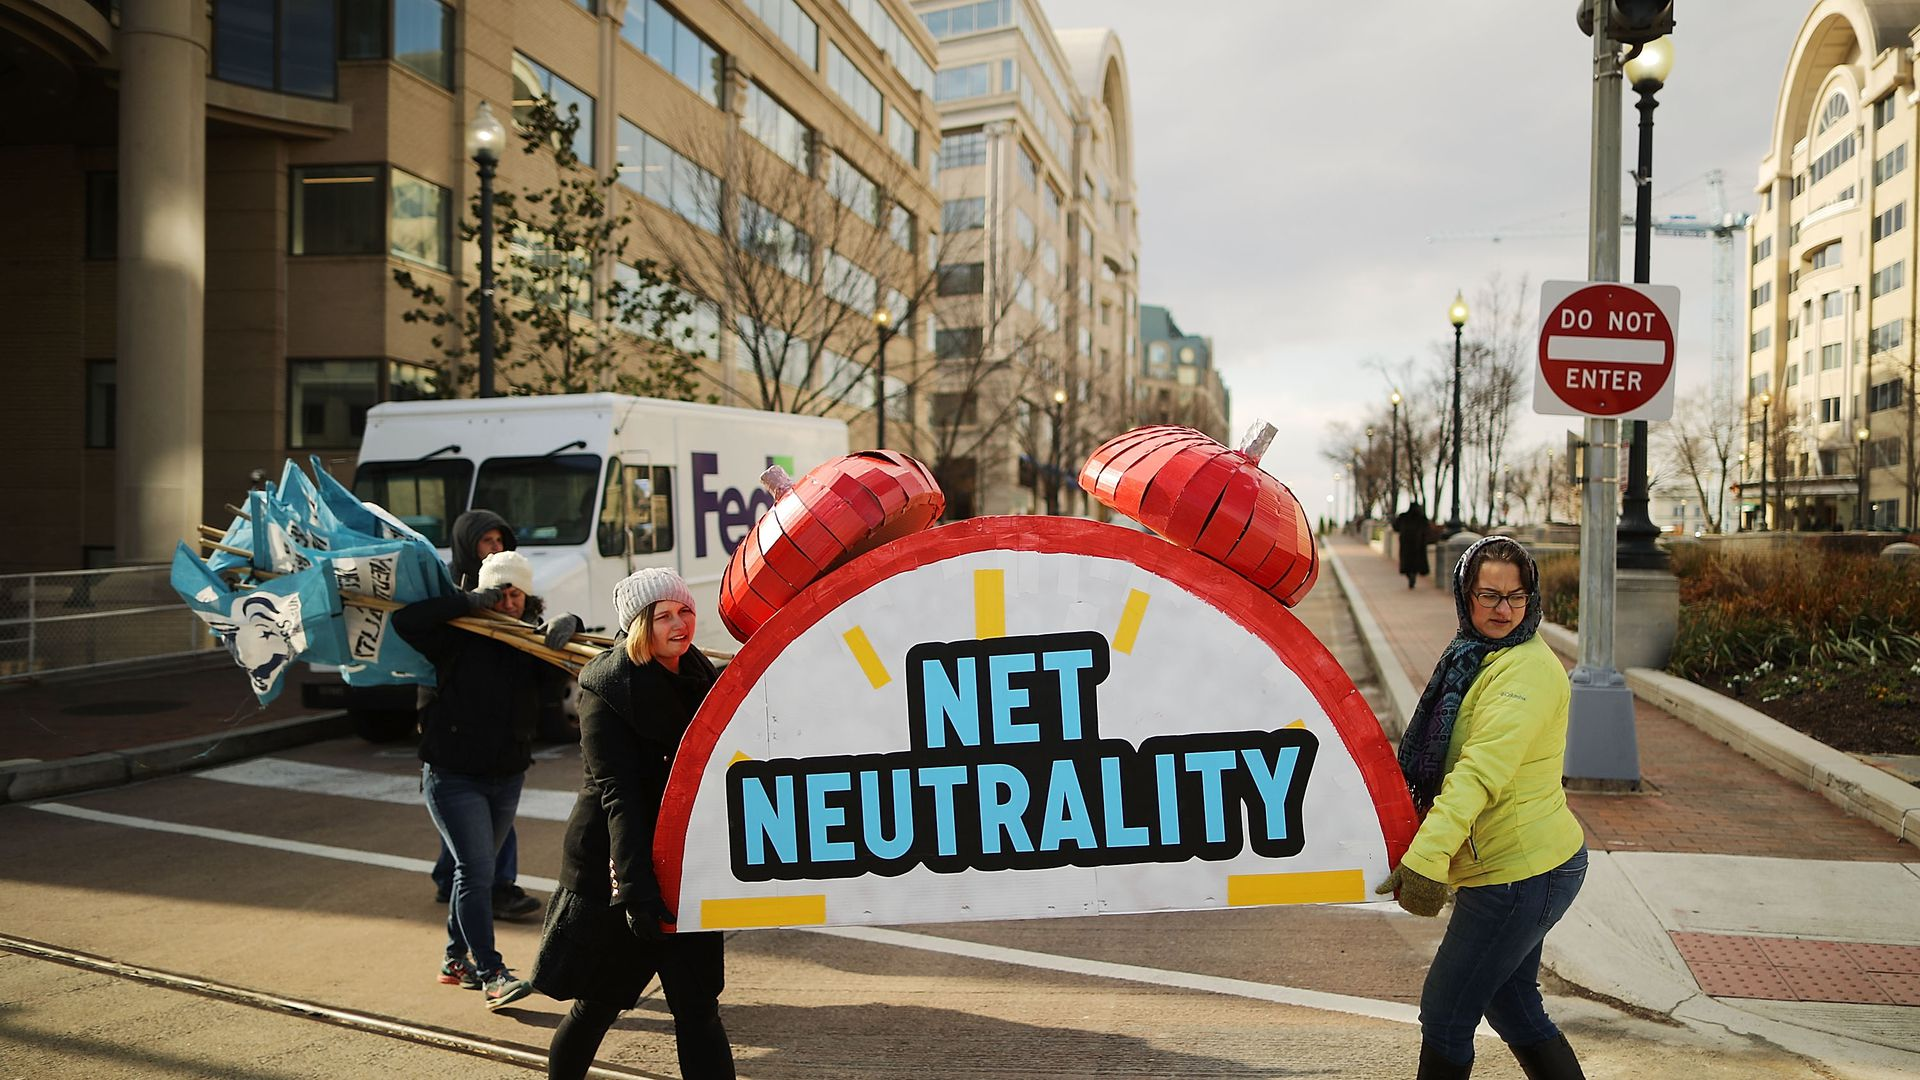 Net neutrality protesters